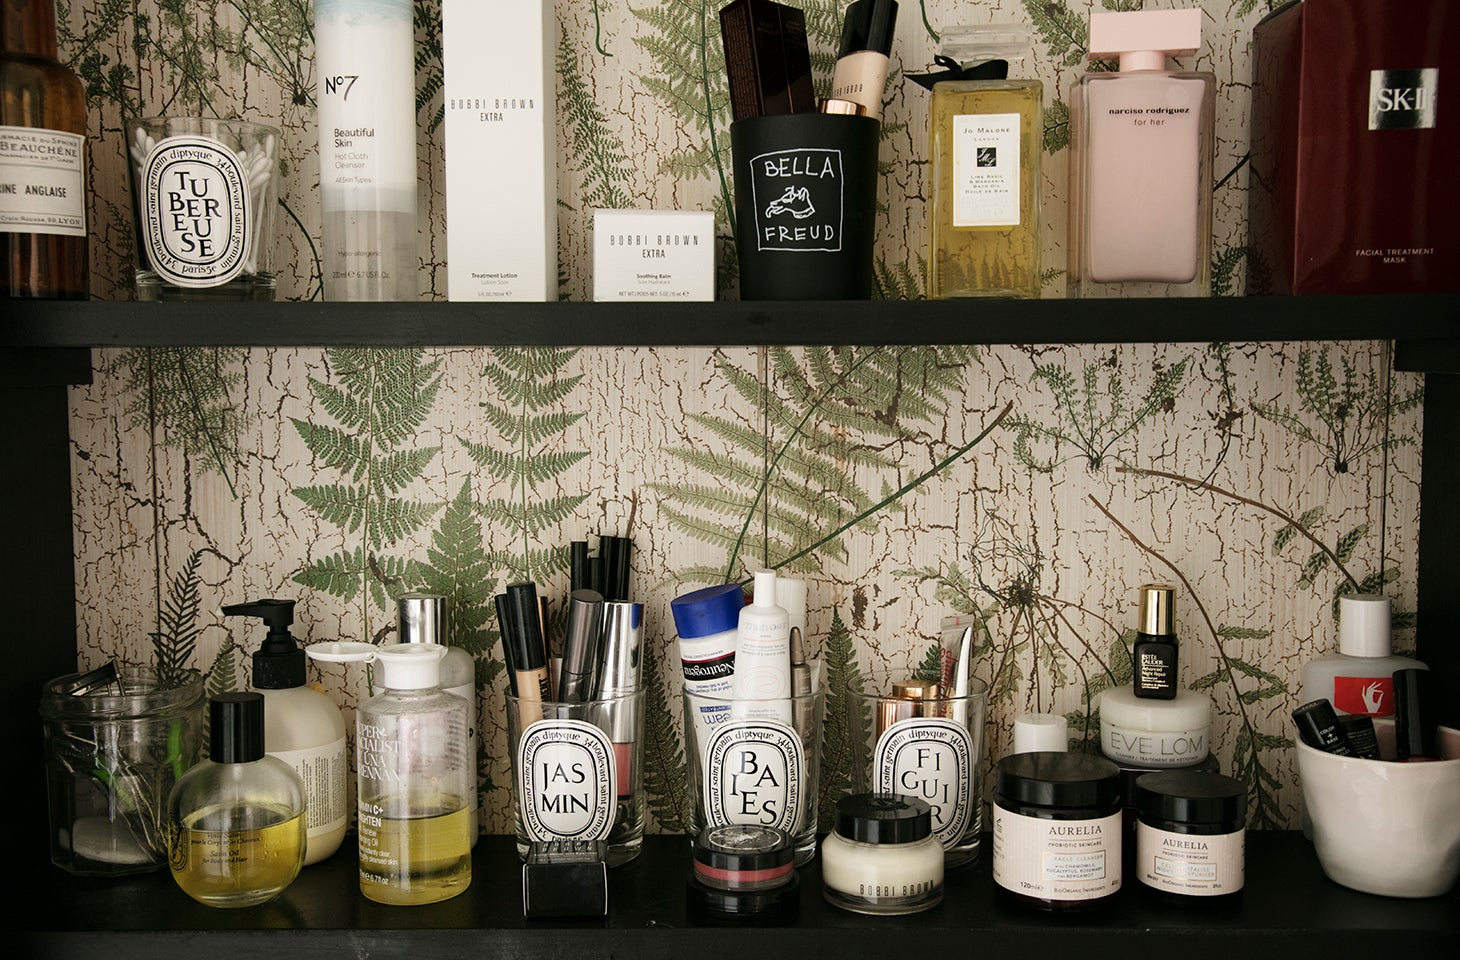 Medicine cabinet with luxury beauty products